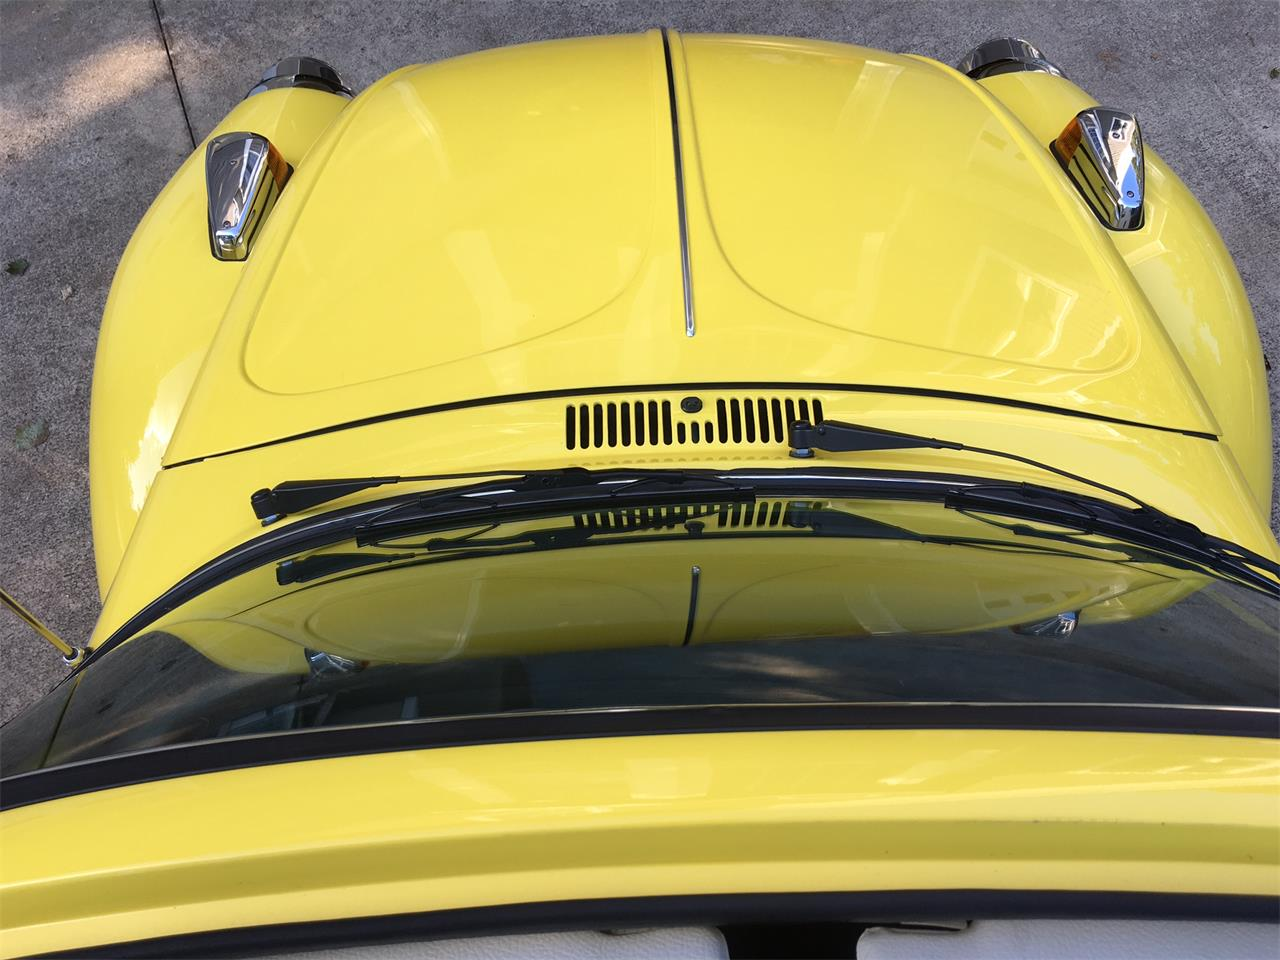 Large Picture of '75 Volkswagen Beetle located in South Carolina Offered by a Private Seller - M5P1